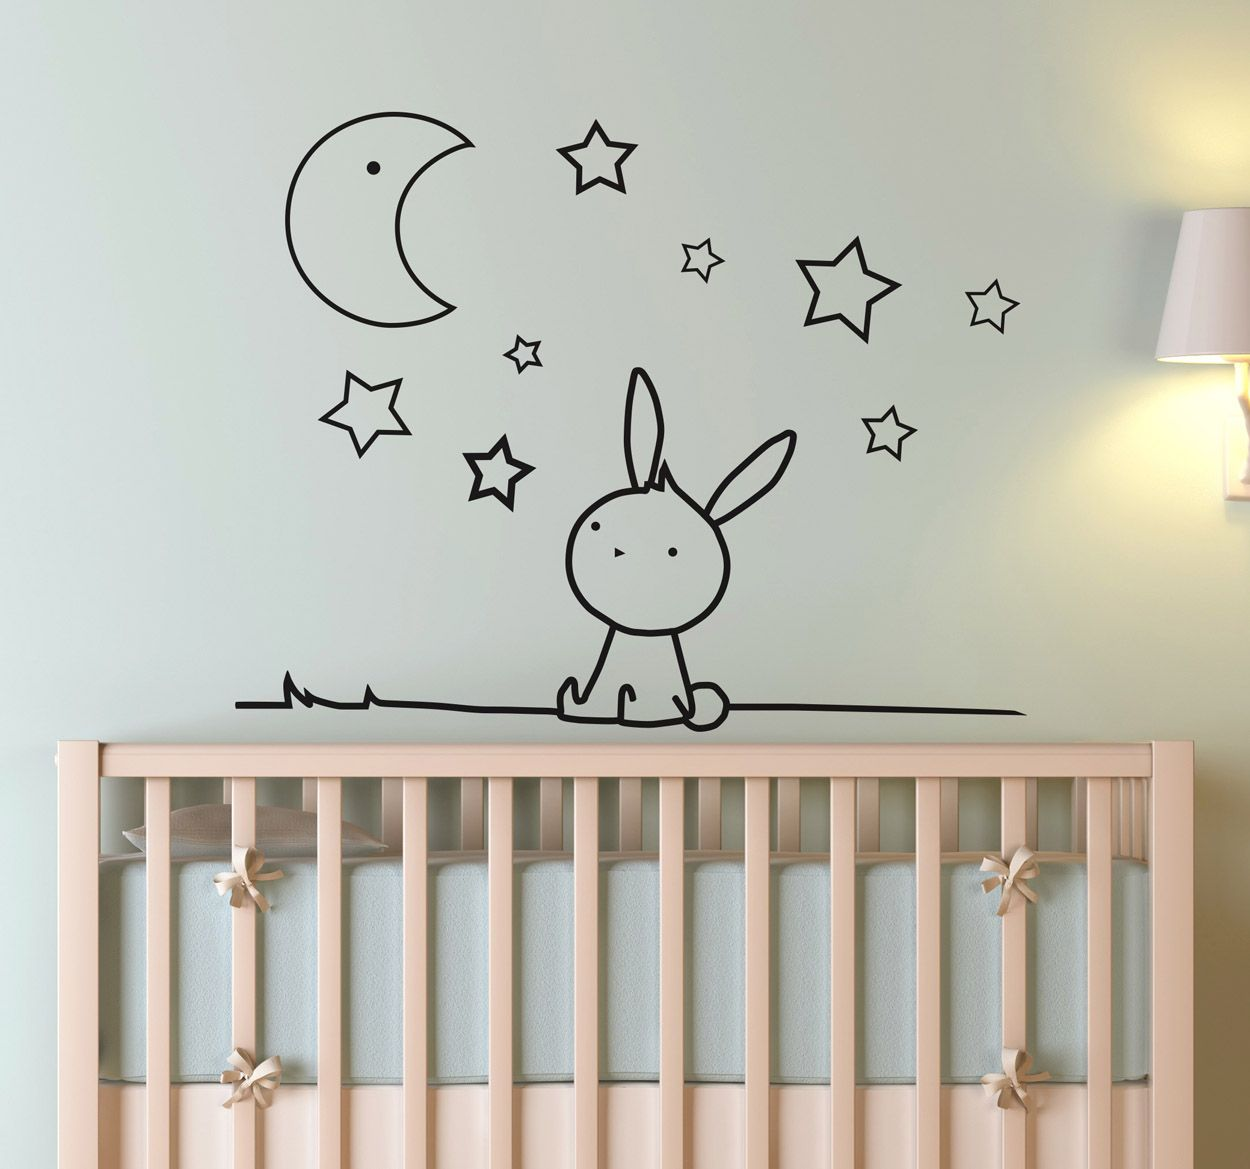 Baby Jungen Zimmer Ideen A Sweet And Simple Wall Sticker Of A Cute Bunny With A Moon And Stars To Decorate Your Child's Nursery And Give It A Neutral Loo… | Kinderzimmer Streichen, Kinder Zimmer Und